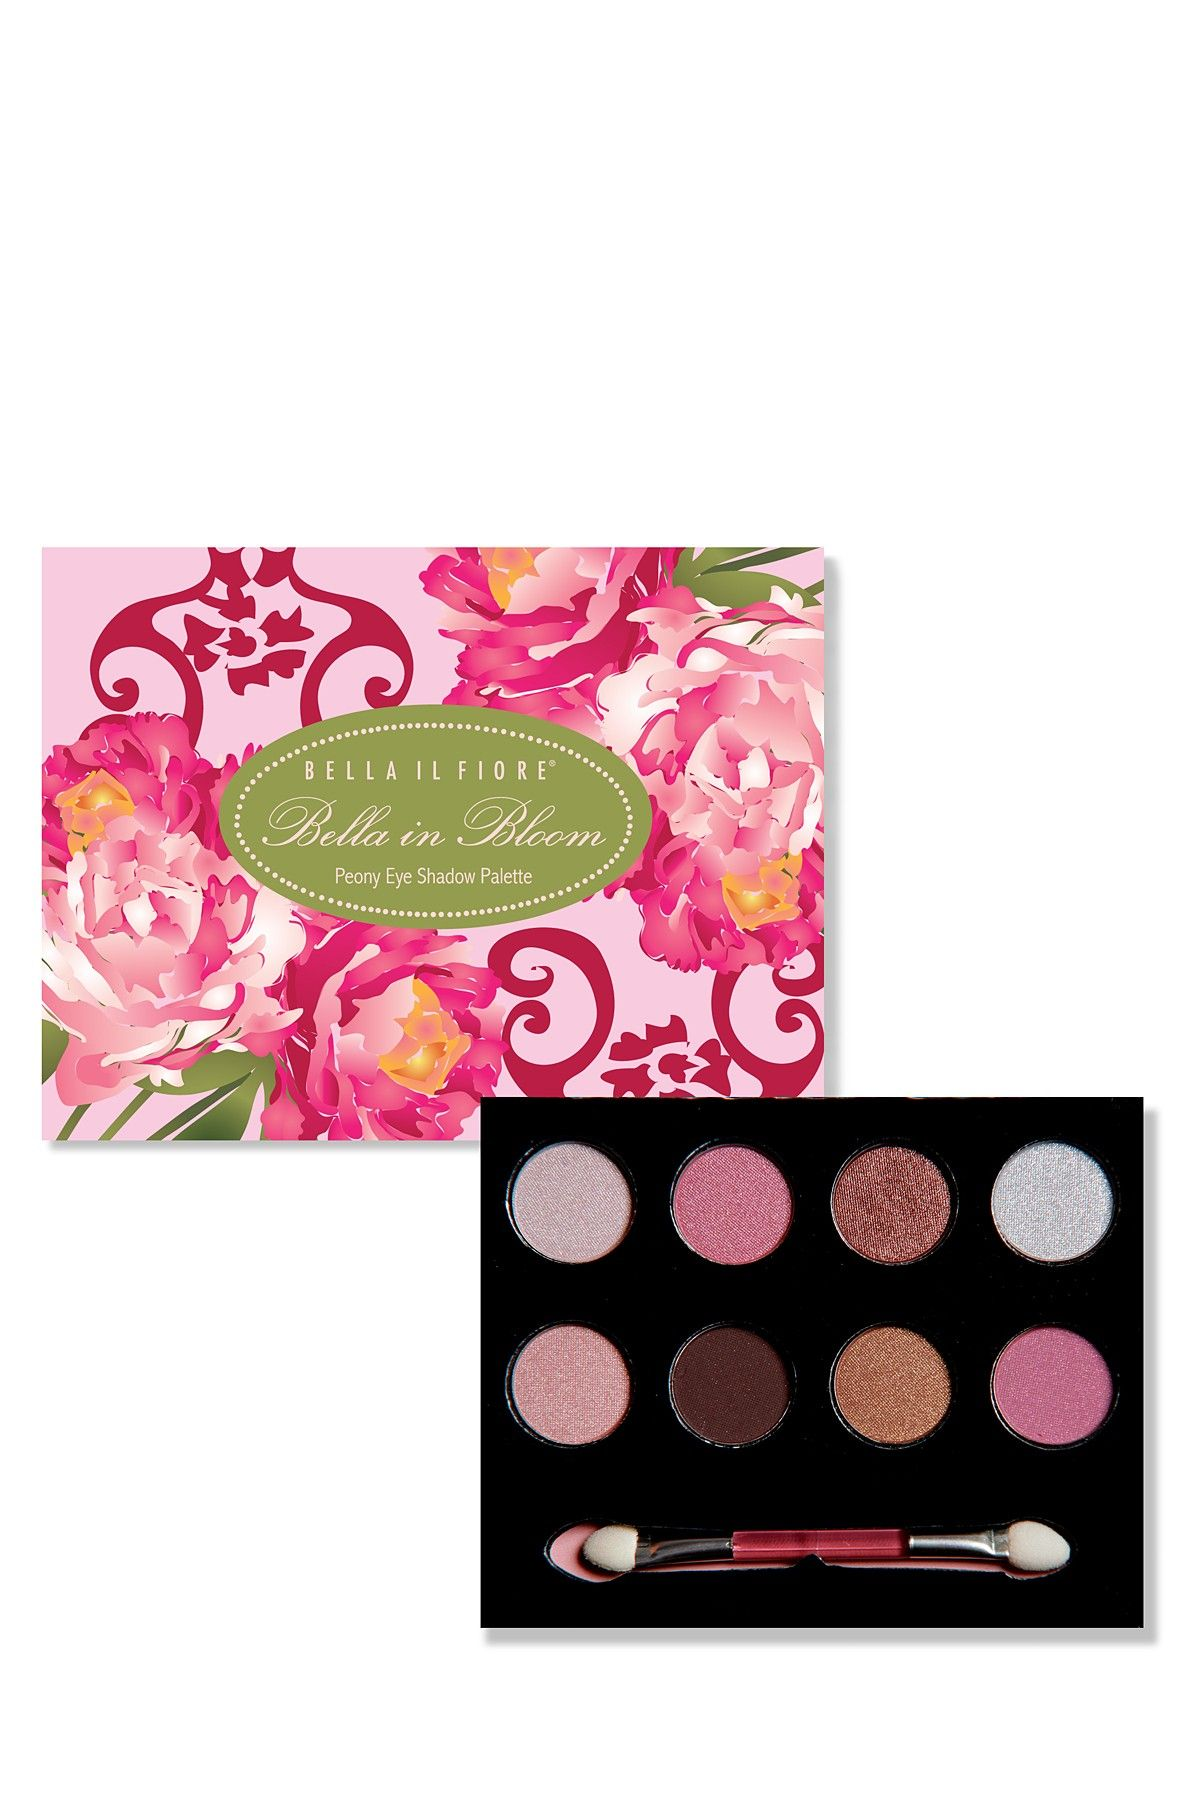 Bella Il Fiore Peony Eye Shadow Palette Pink Color